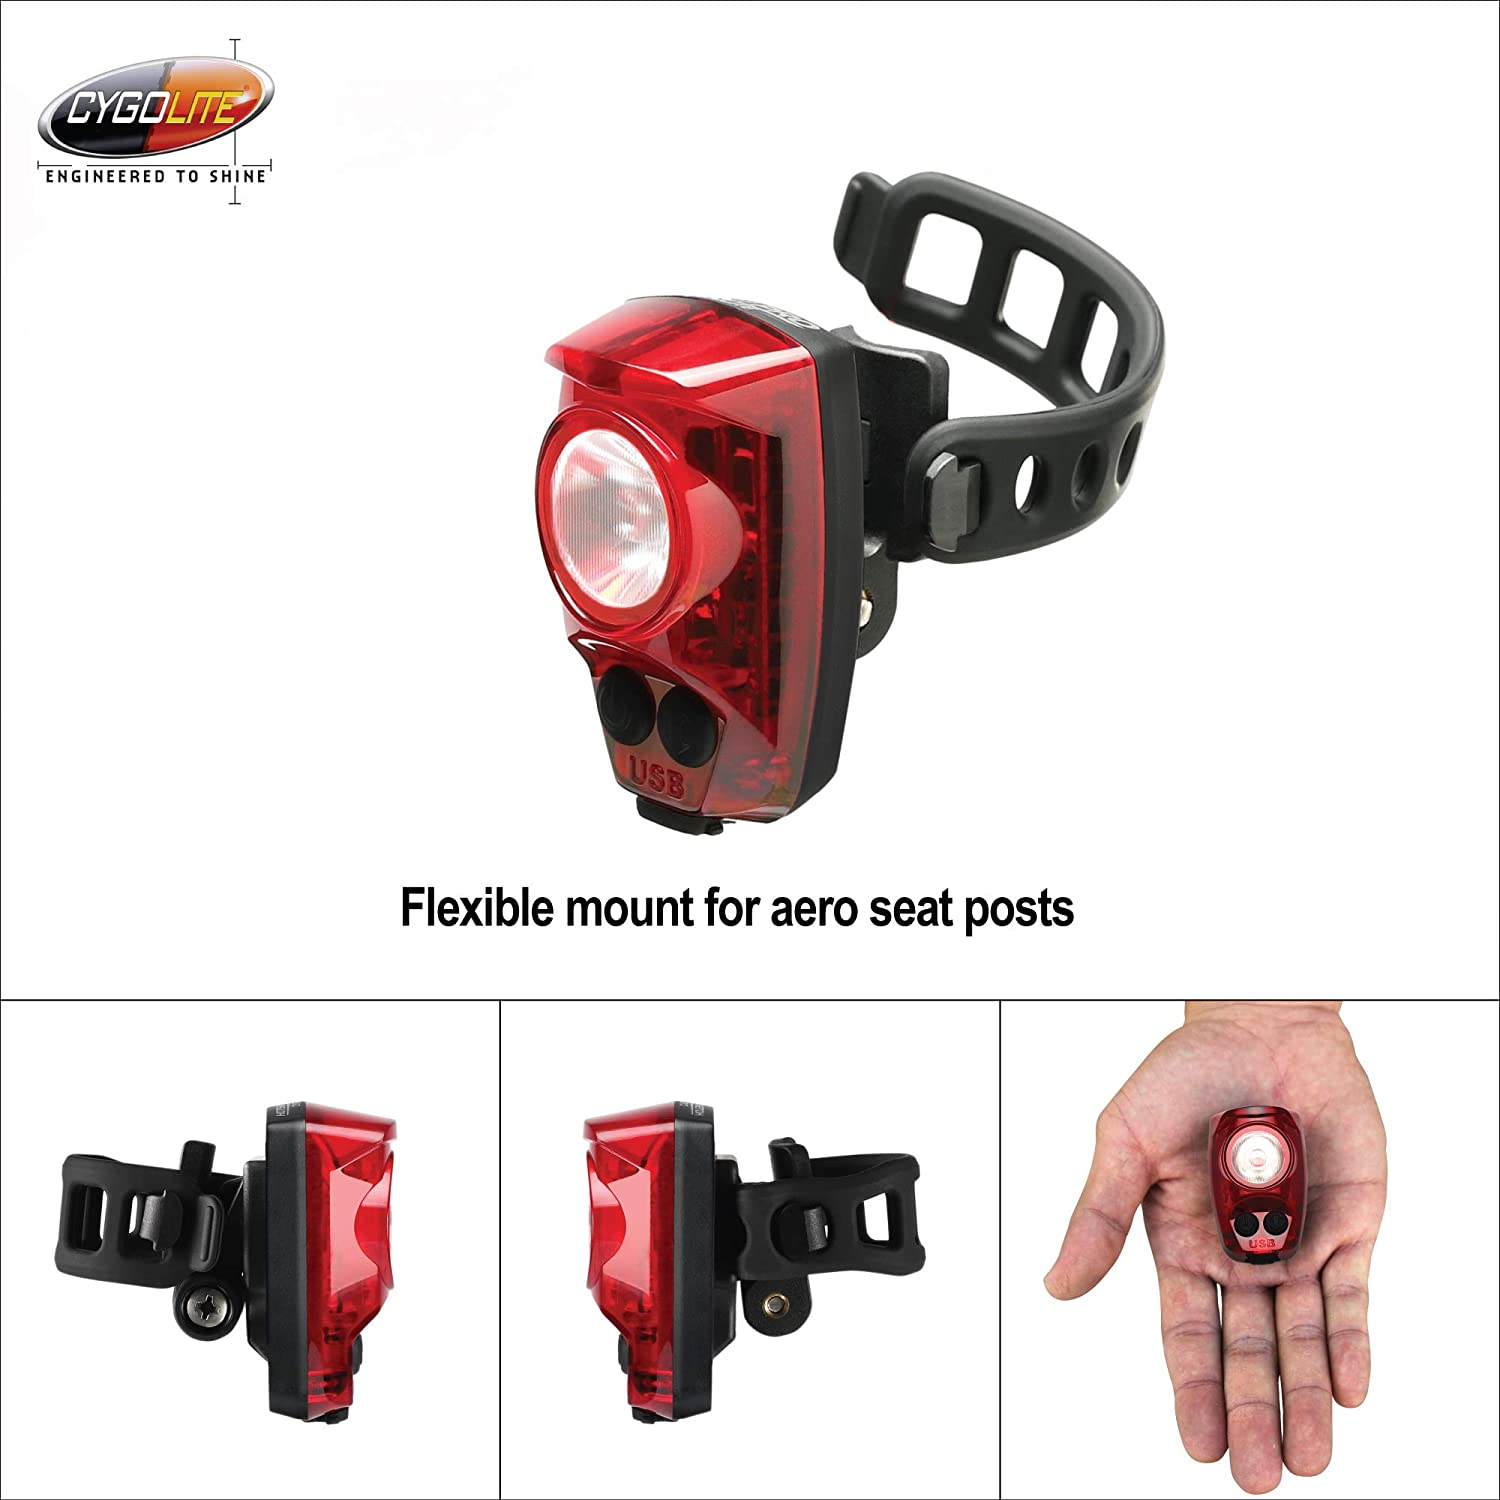 CYGOLITE Hotshot Pro 200 Lumen Bike Tail Light User Adjustable Flash Speed- Compact Design Great for Busy Roads USB Rechargeable 6 Night /& Daytime Modes IP64 Water Resistant FLEXIBLE MOUNT TYPE